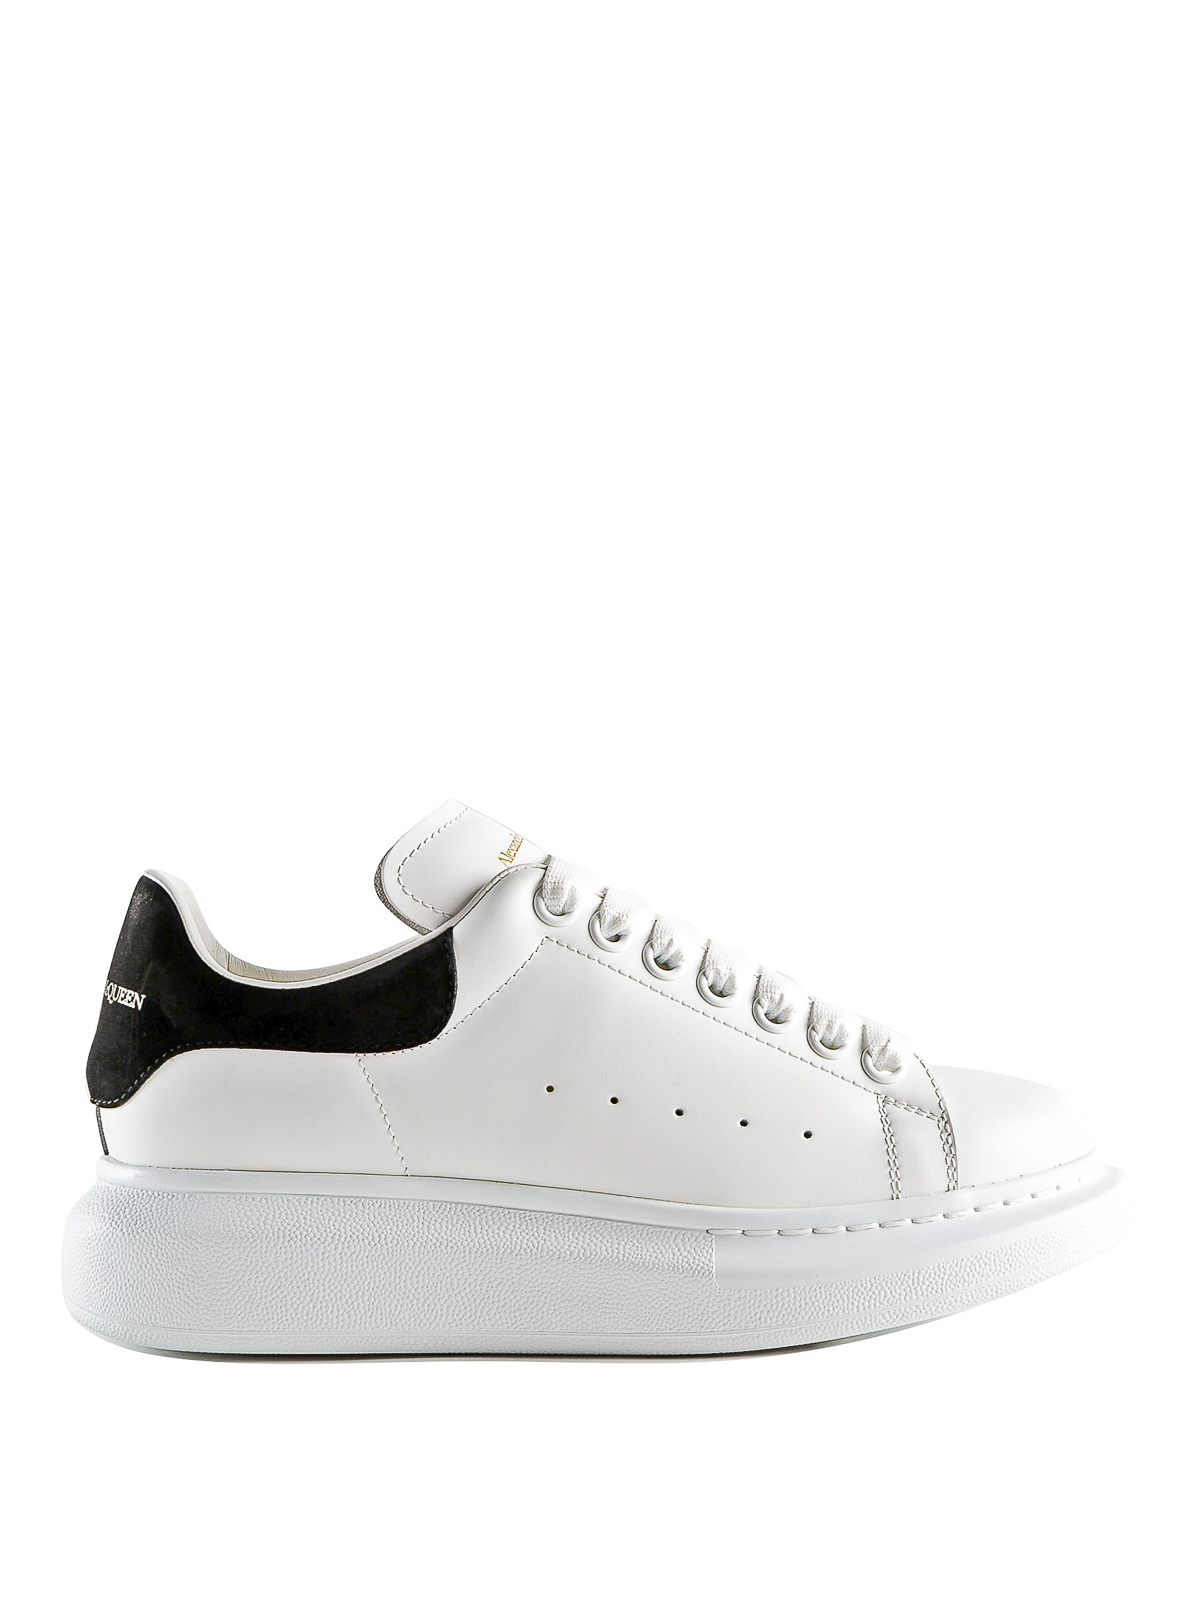 Alexander Mcqueen OVERSIZE SMOOTH LEATHER SNEAKERS